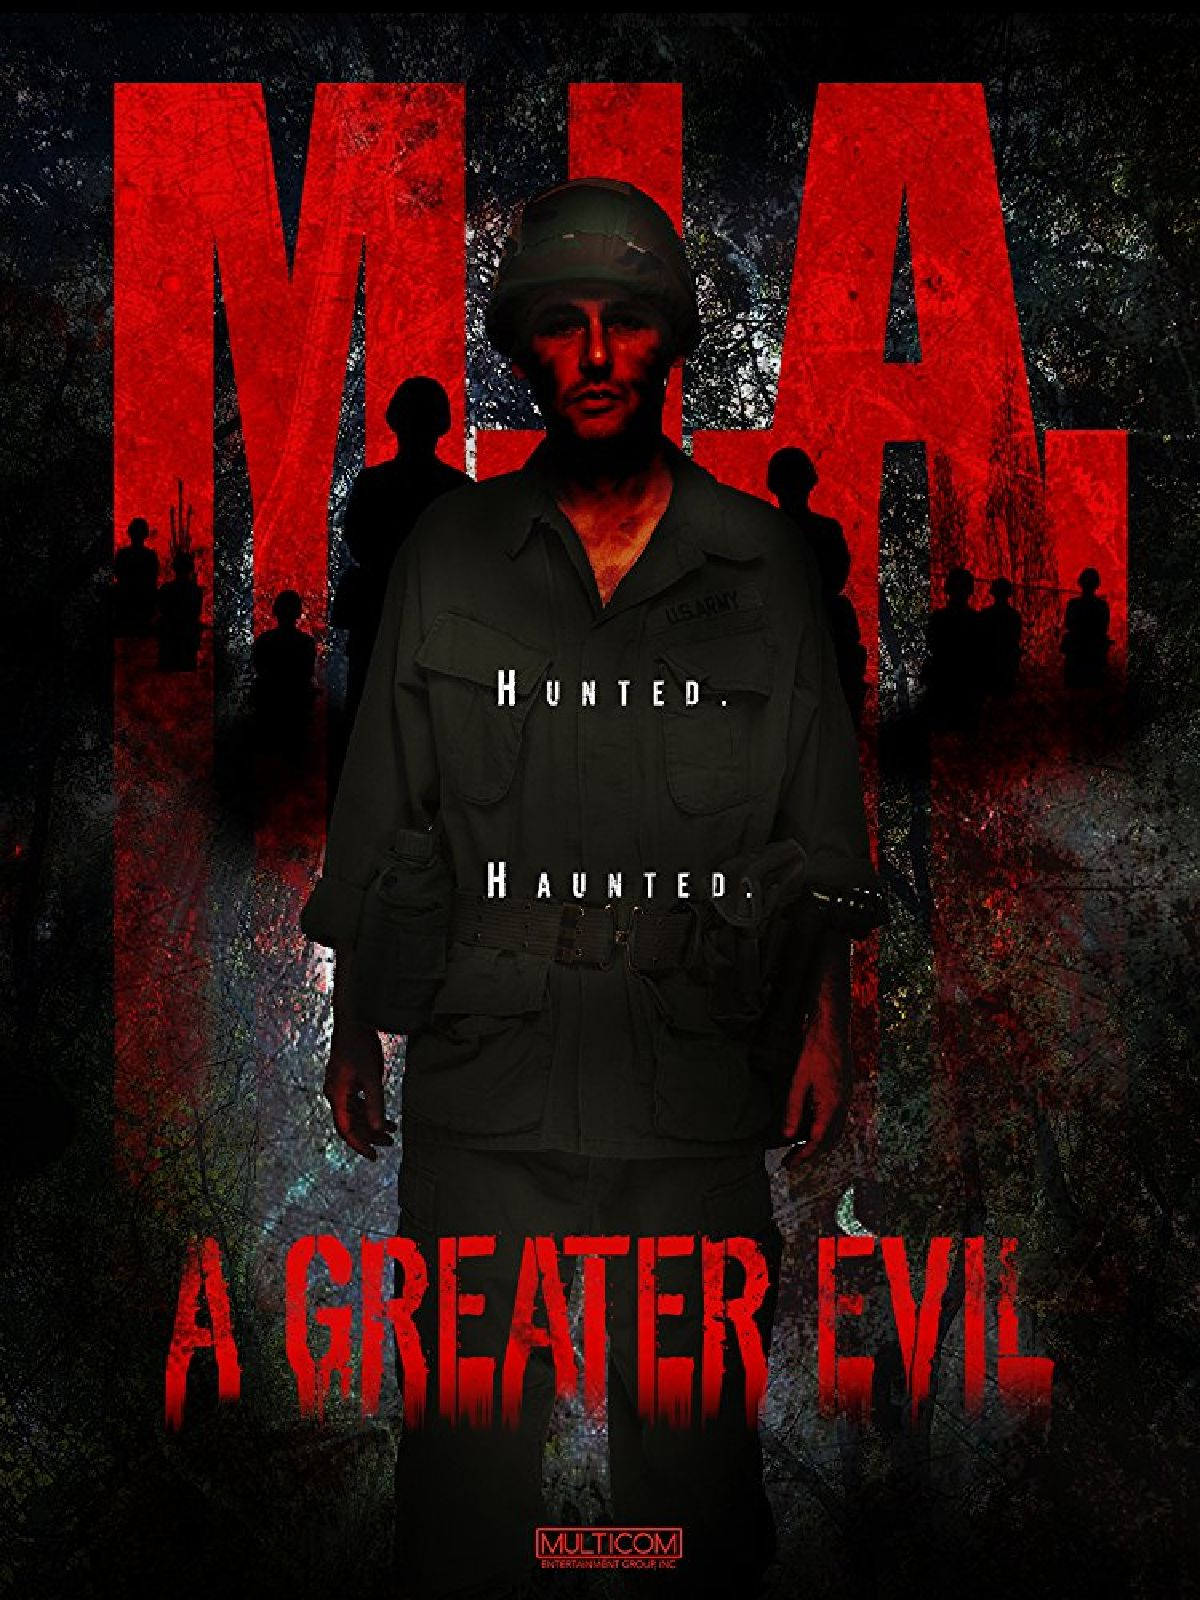 'M.I.A. A Greater Evil' movie poster